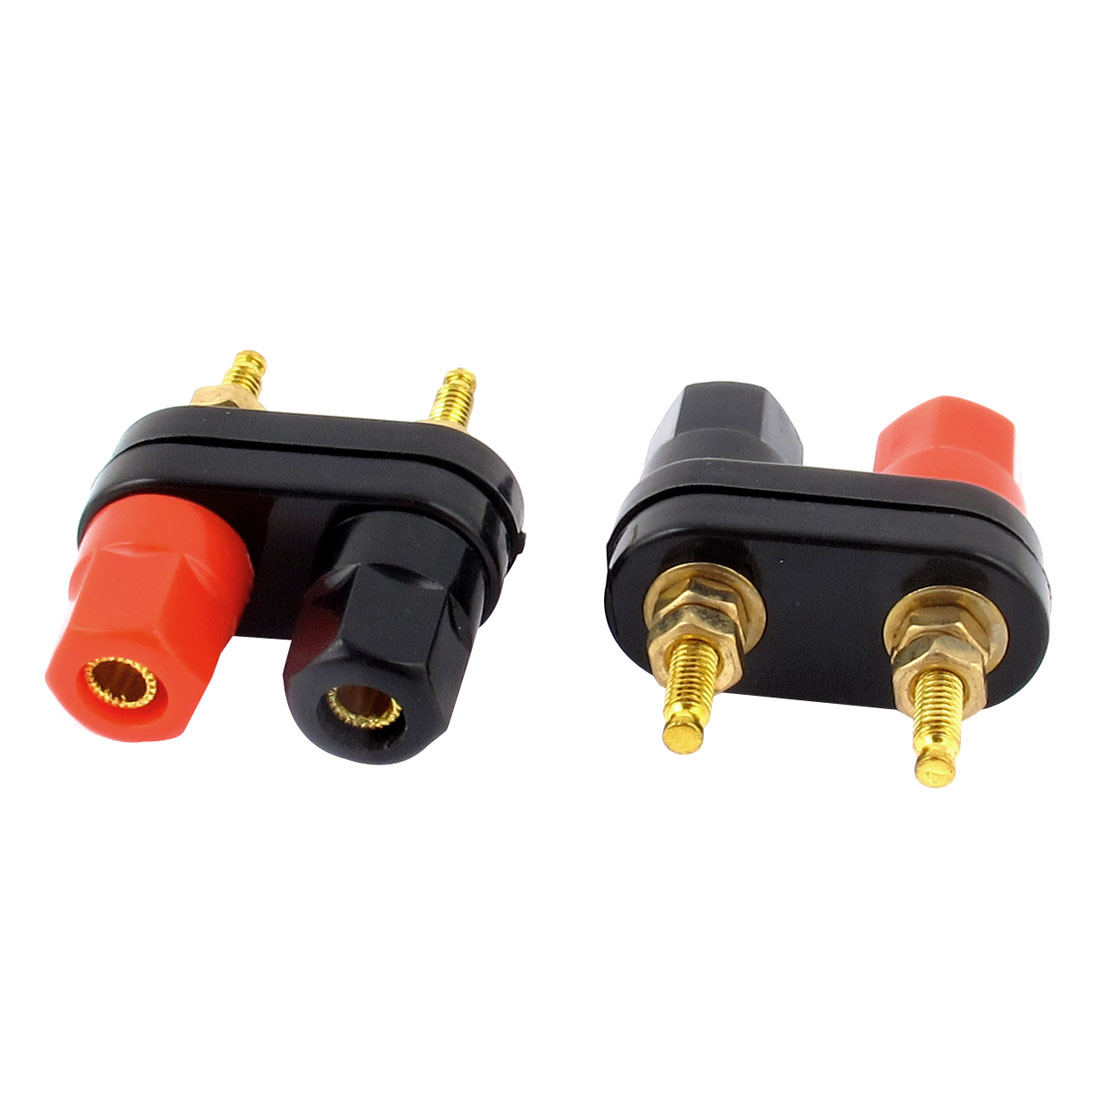 Unique Bargains Speaker Amplifier Terminal Binding Post Dual 2-way Banana Plug Jack 2 Pcs